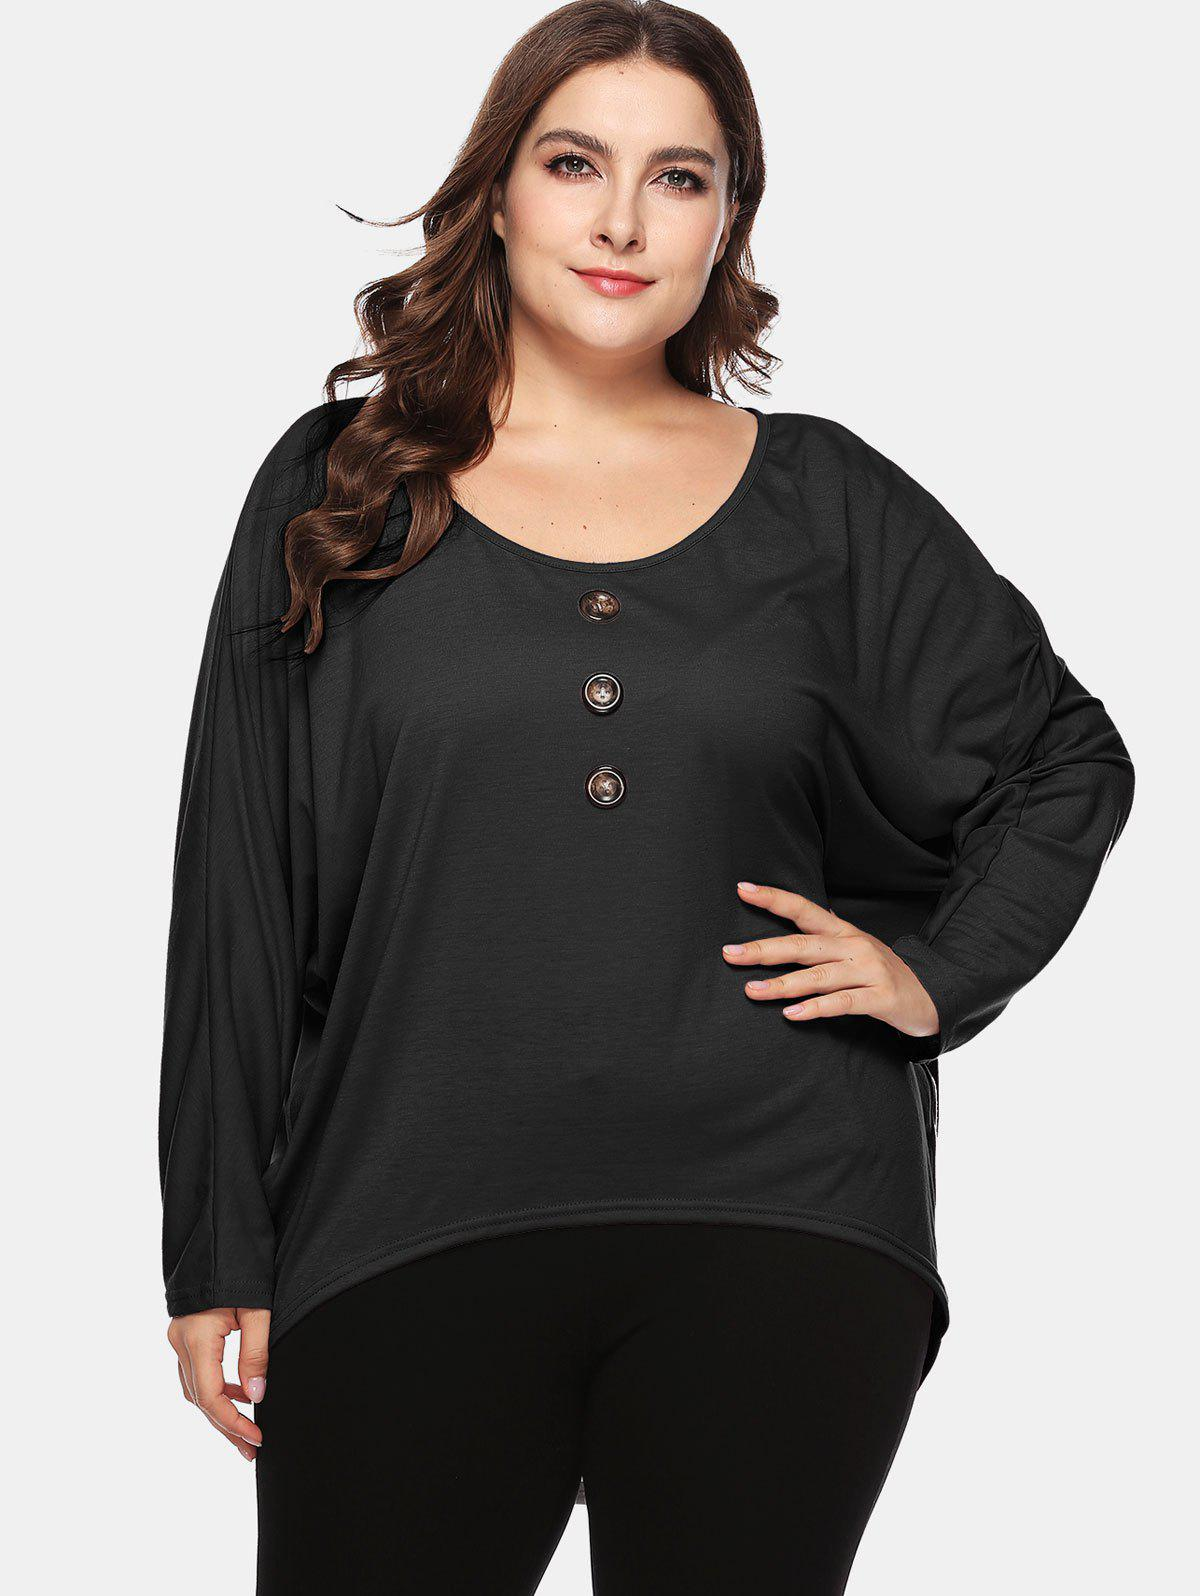 Shop Button Embellished Plus Size High Low T-shirt